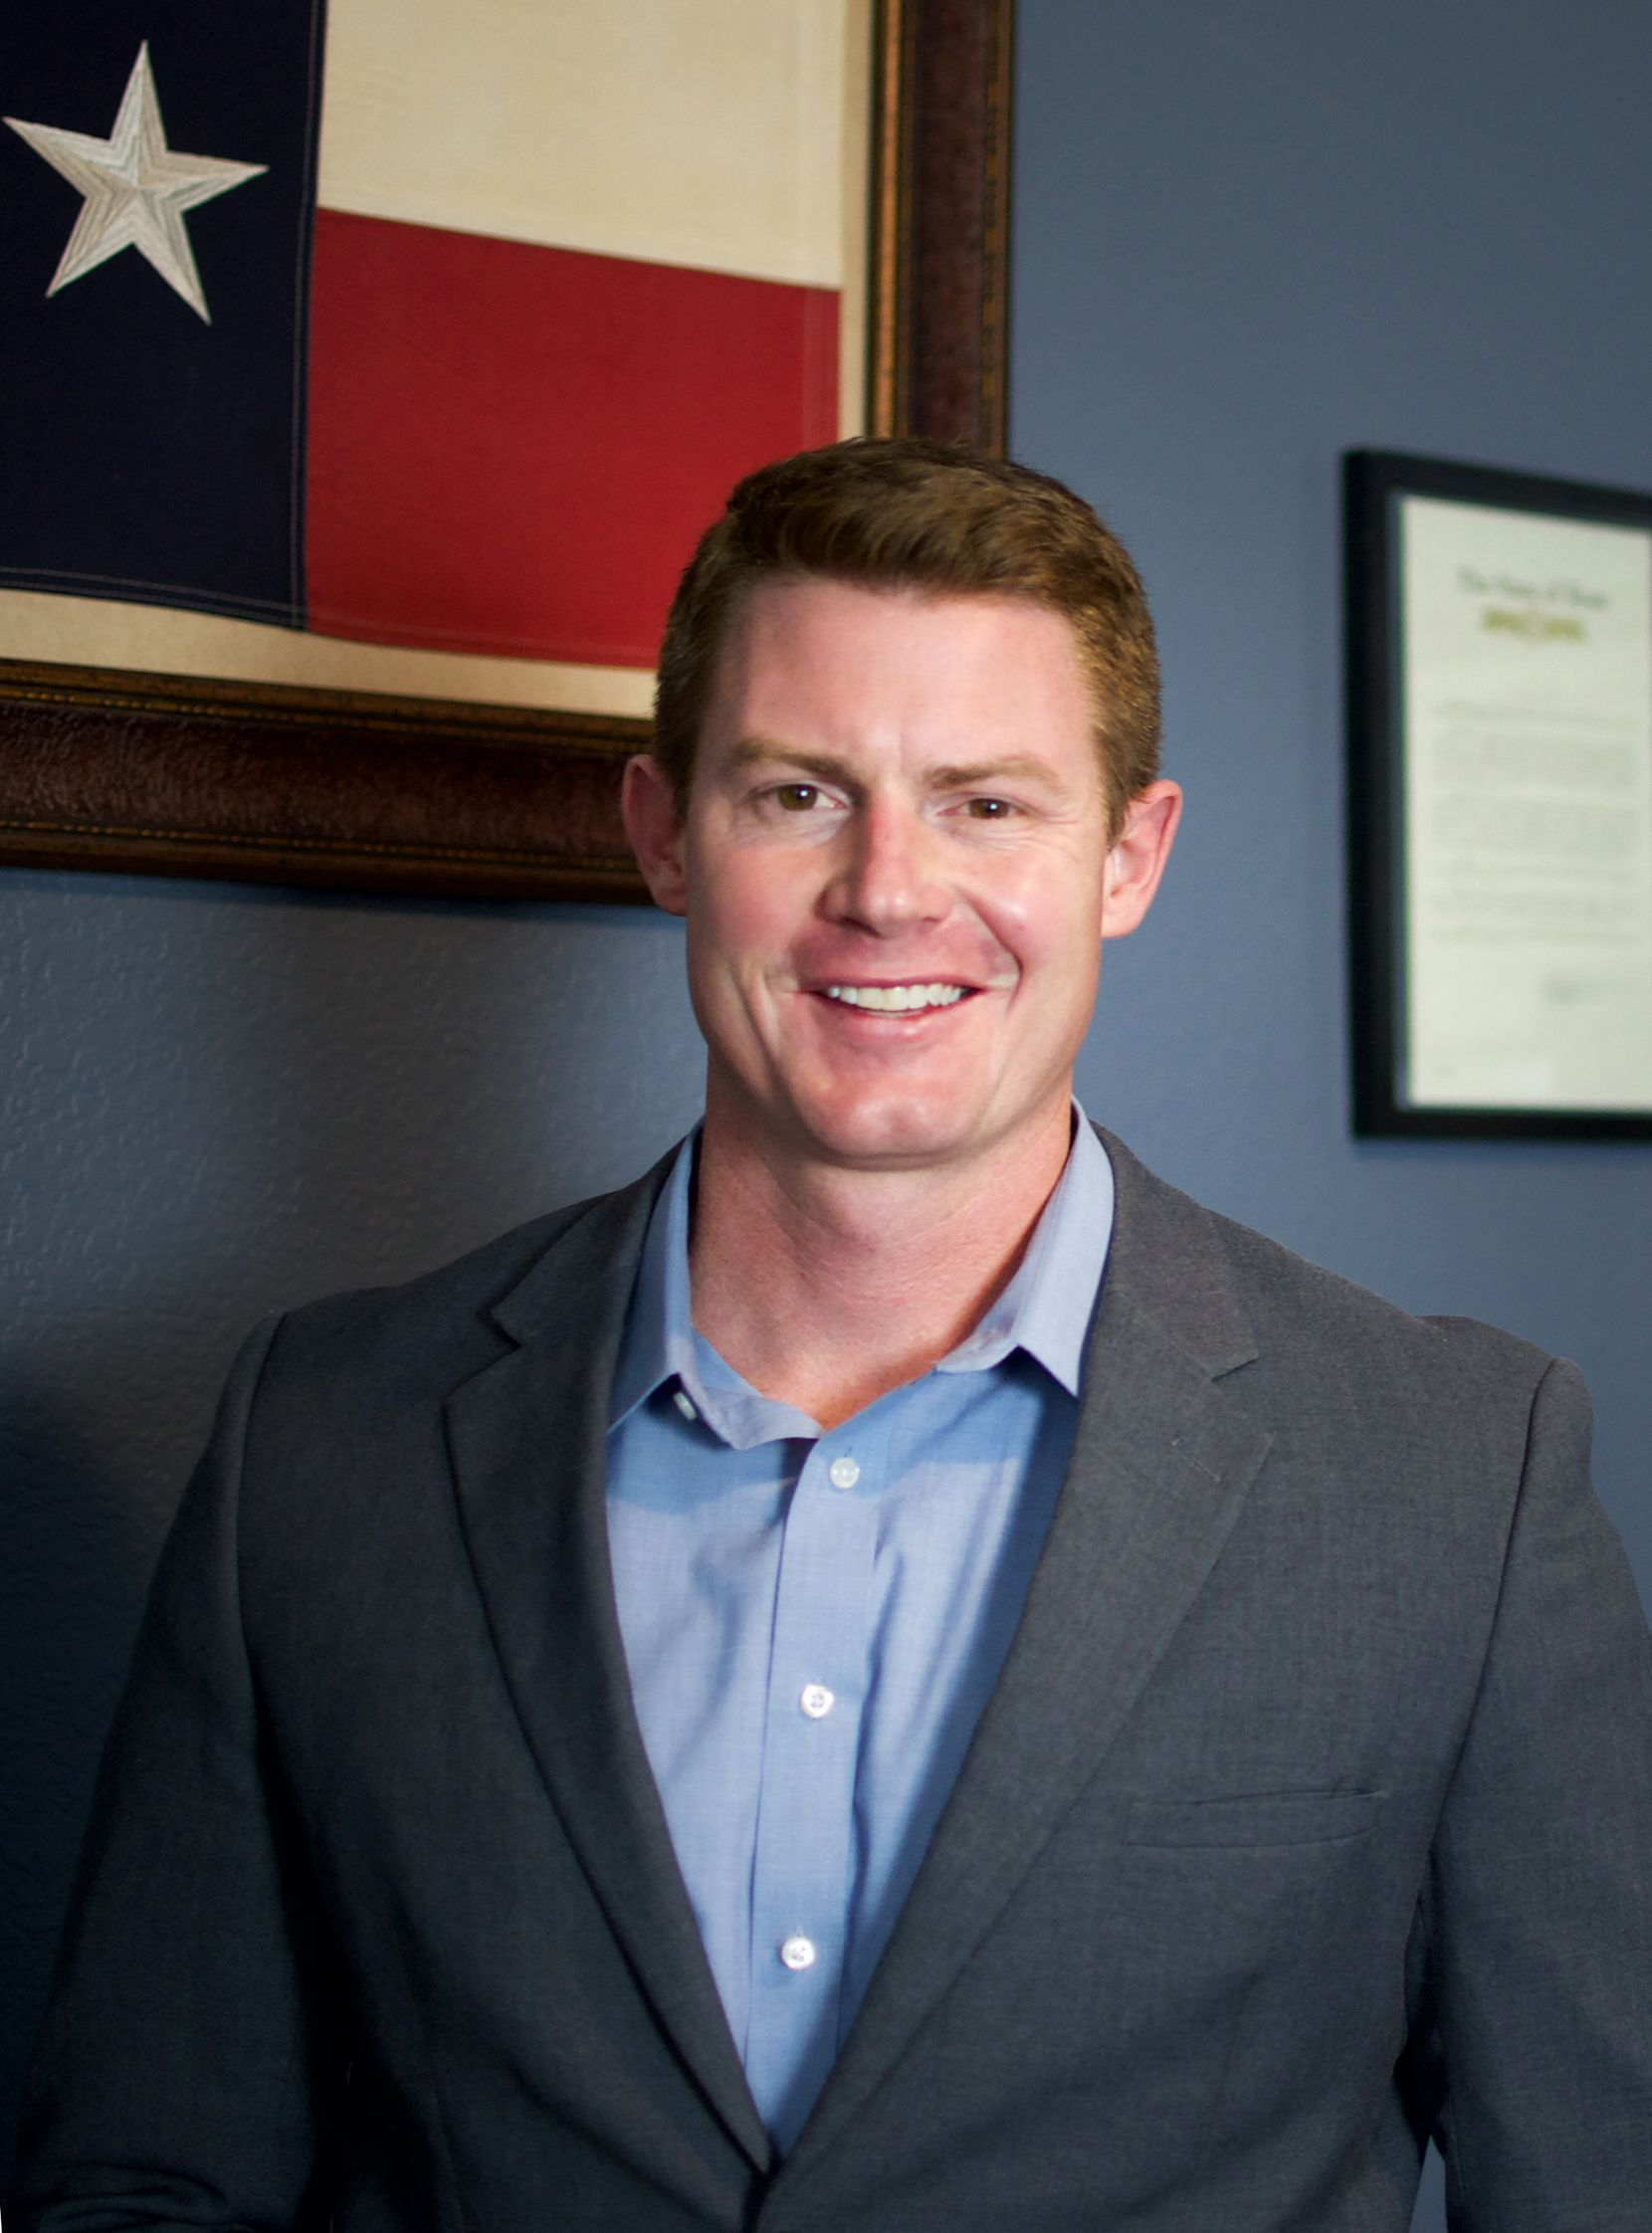 Michael Wood is a Republican candidate in the special election to replace Ron Wright in District 6.